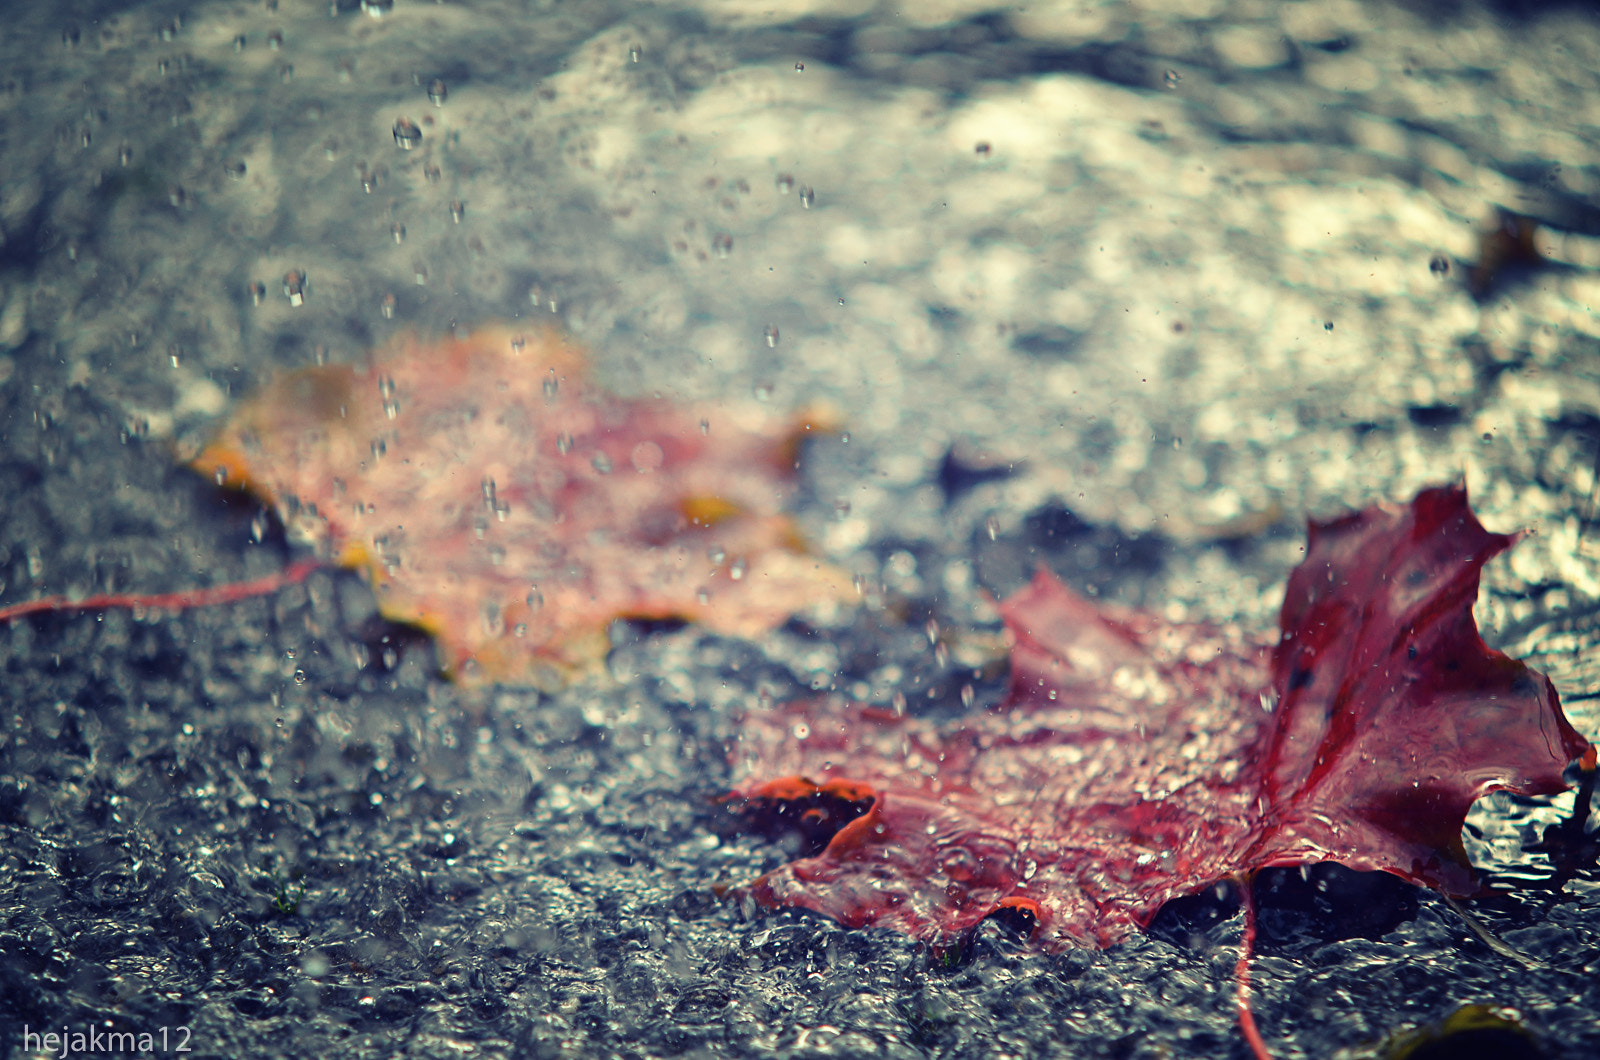 Photograph summer is over by hejakma  . on 500px